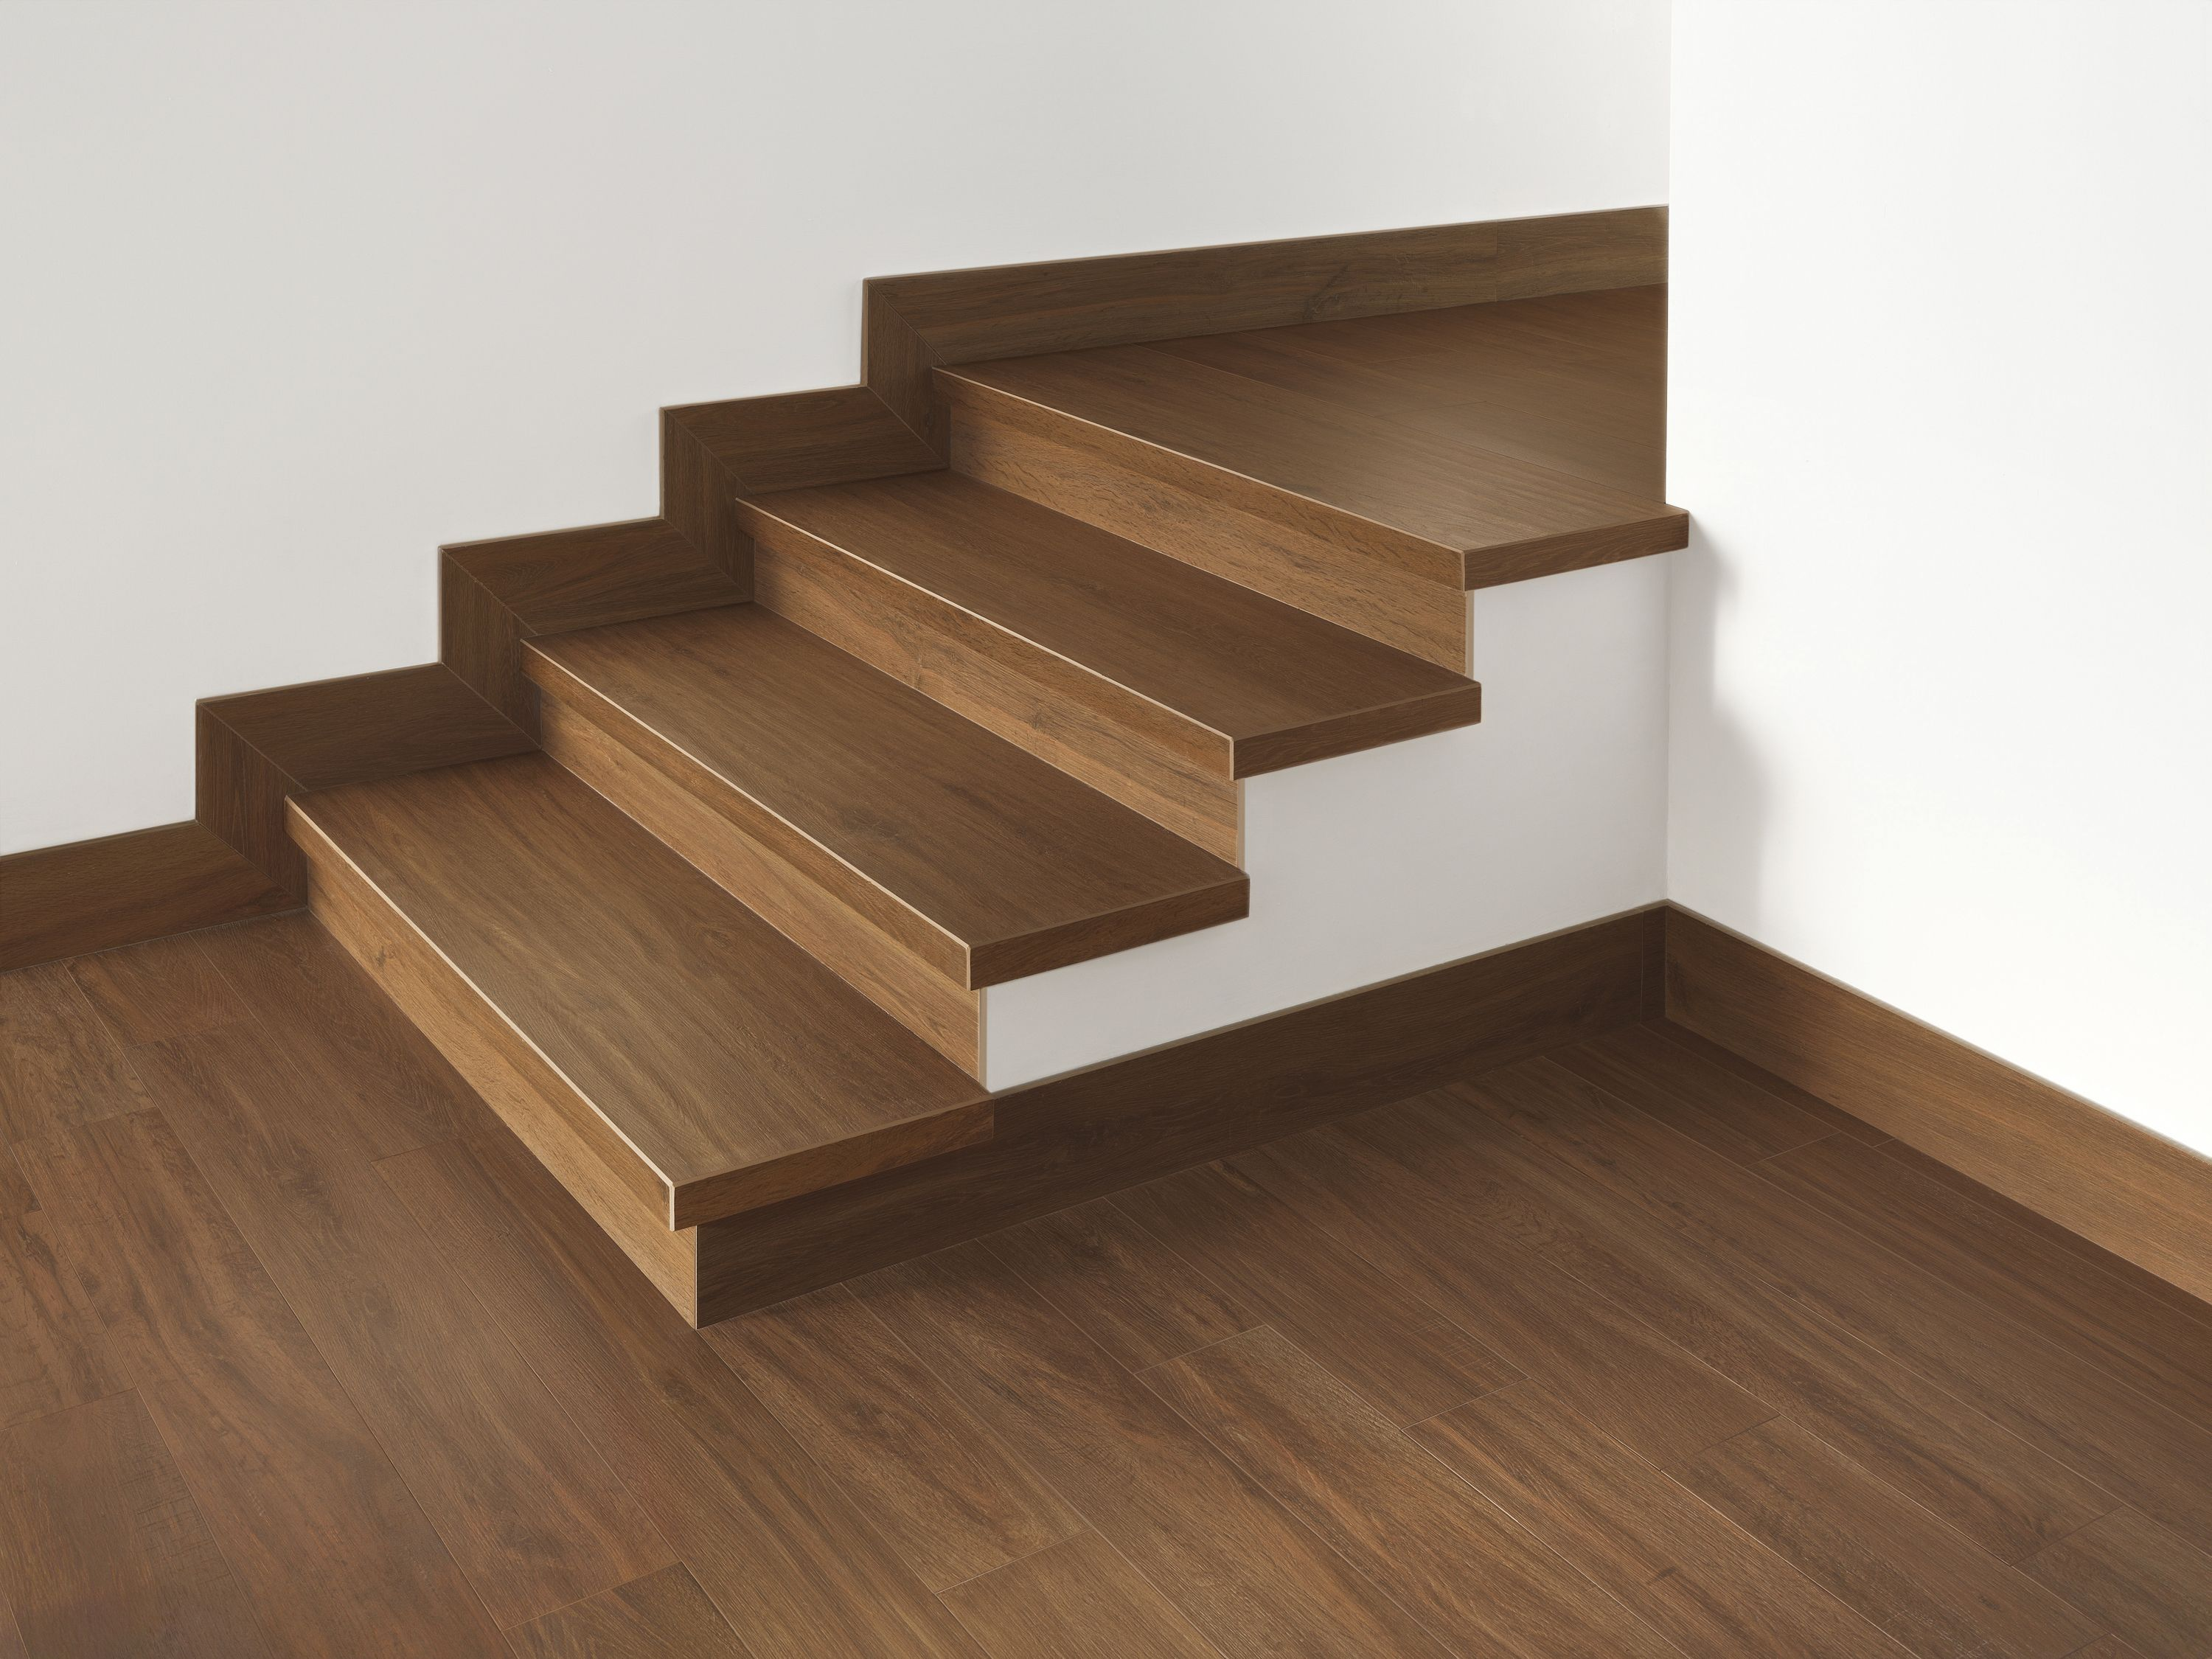 Brilliant timber staircase and flooring using fantastic